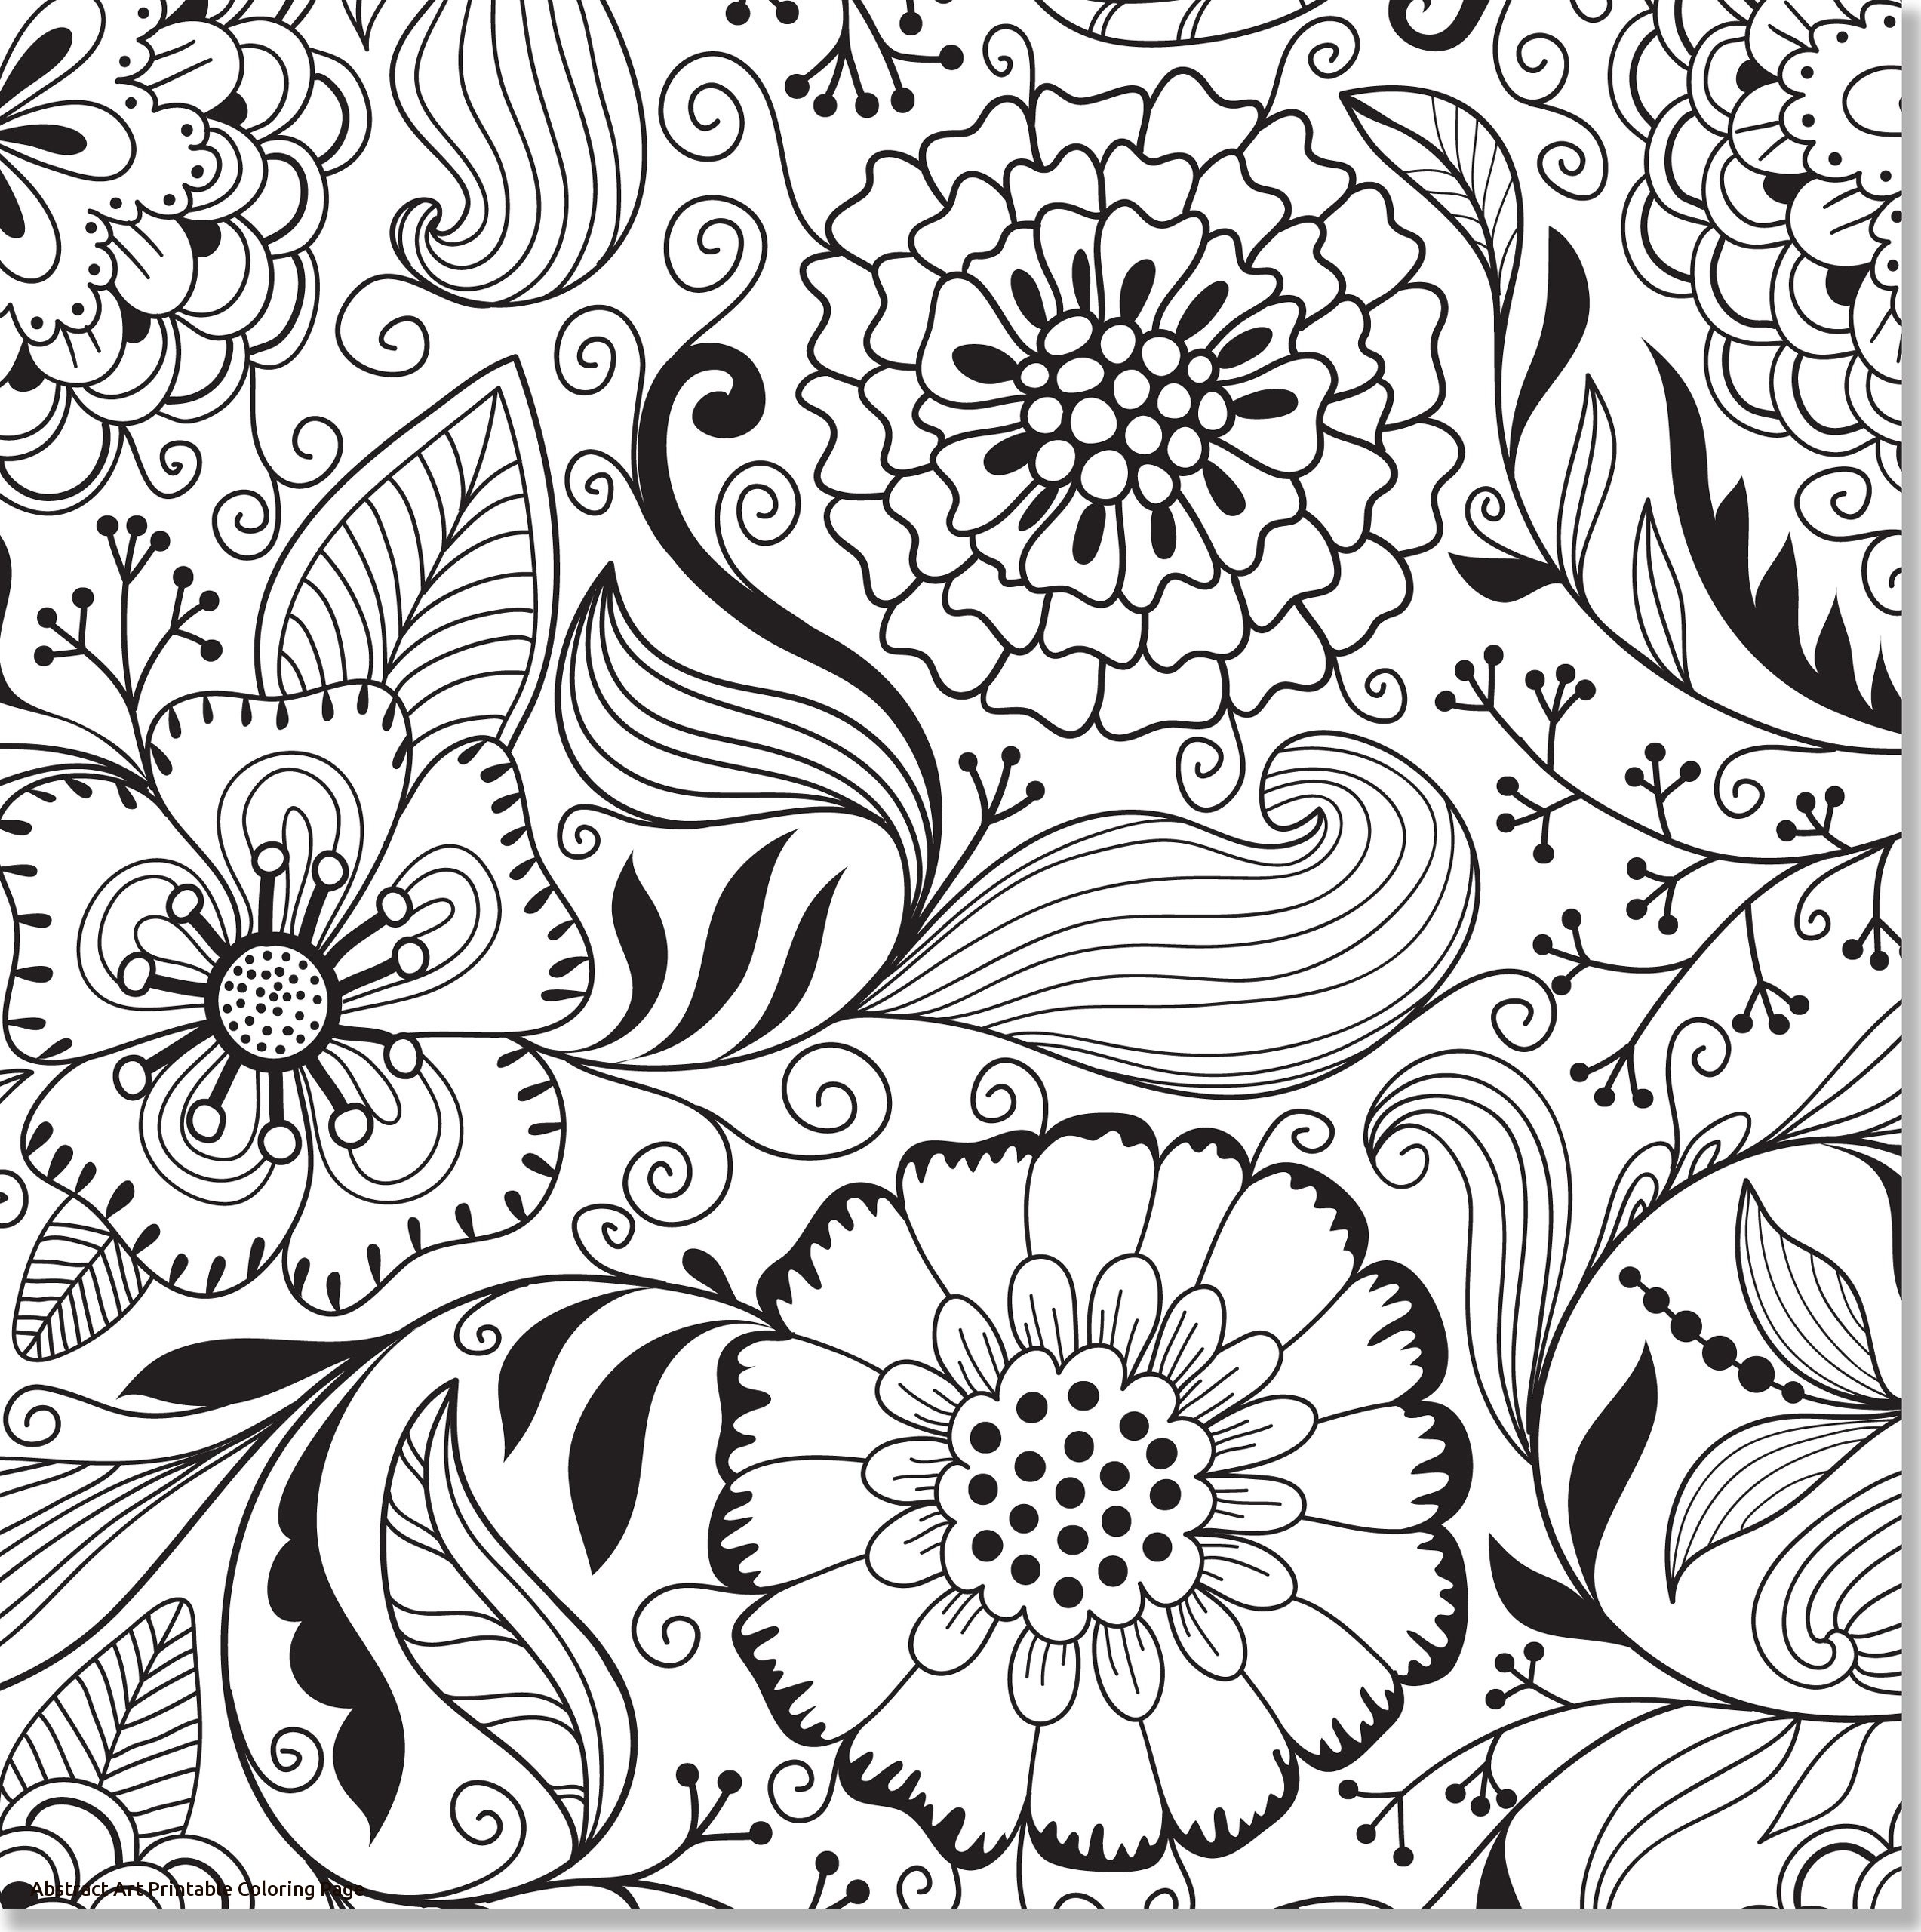 2546x2560 Awesome Printable Abstract Flower Coloring Pages Design